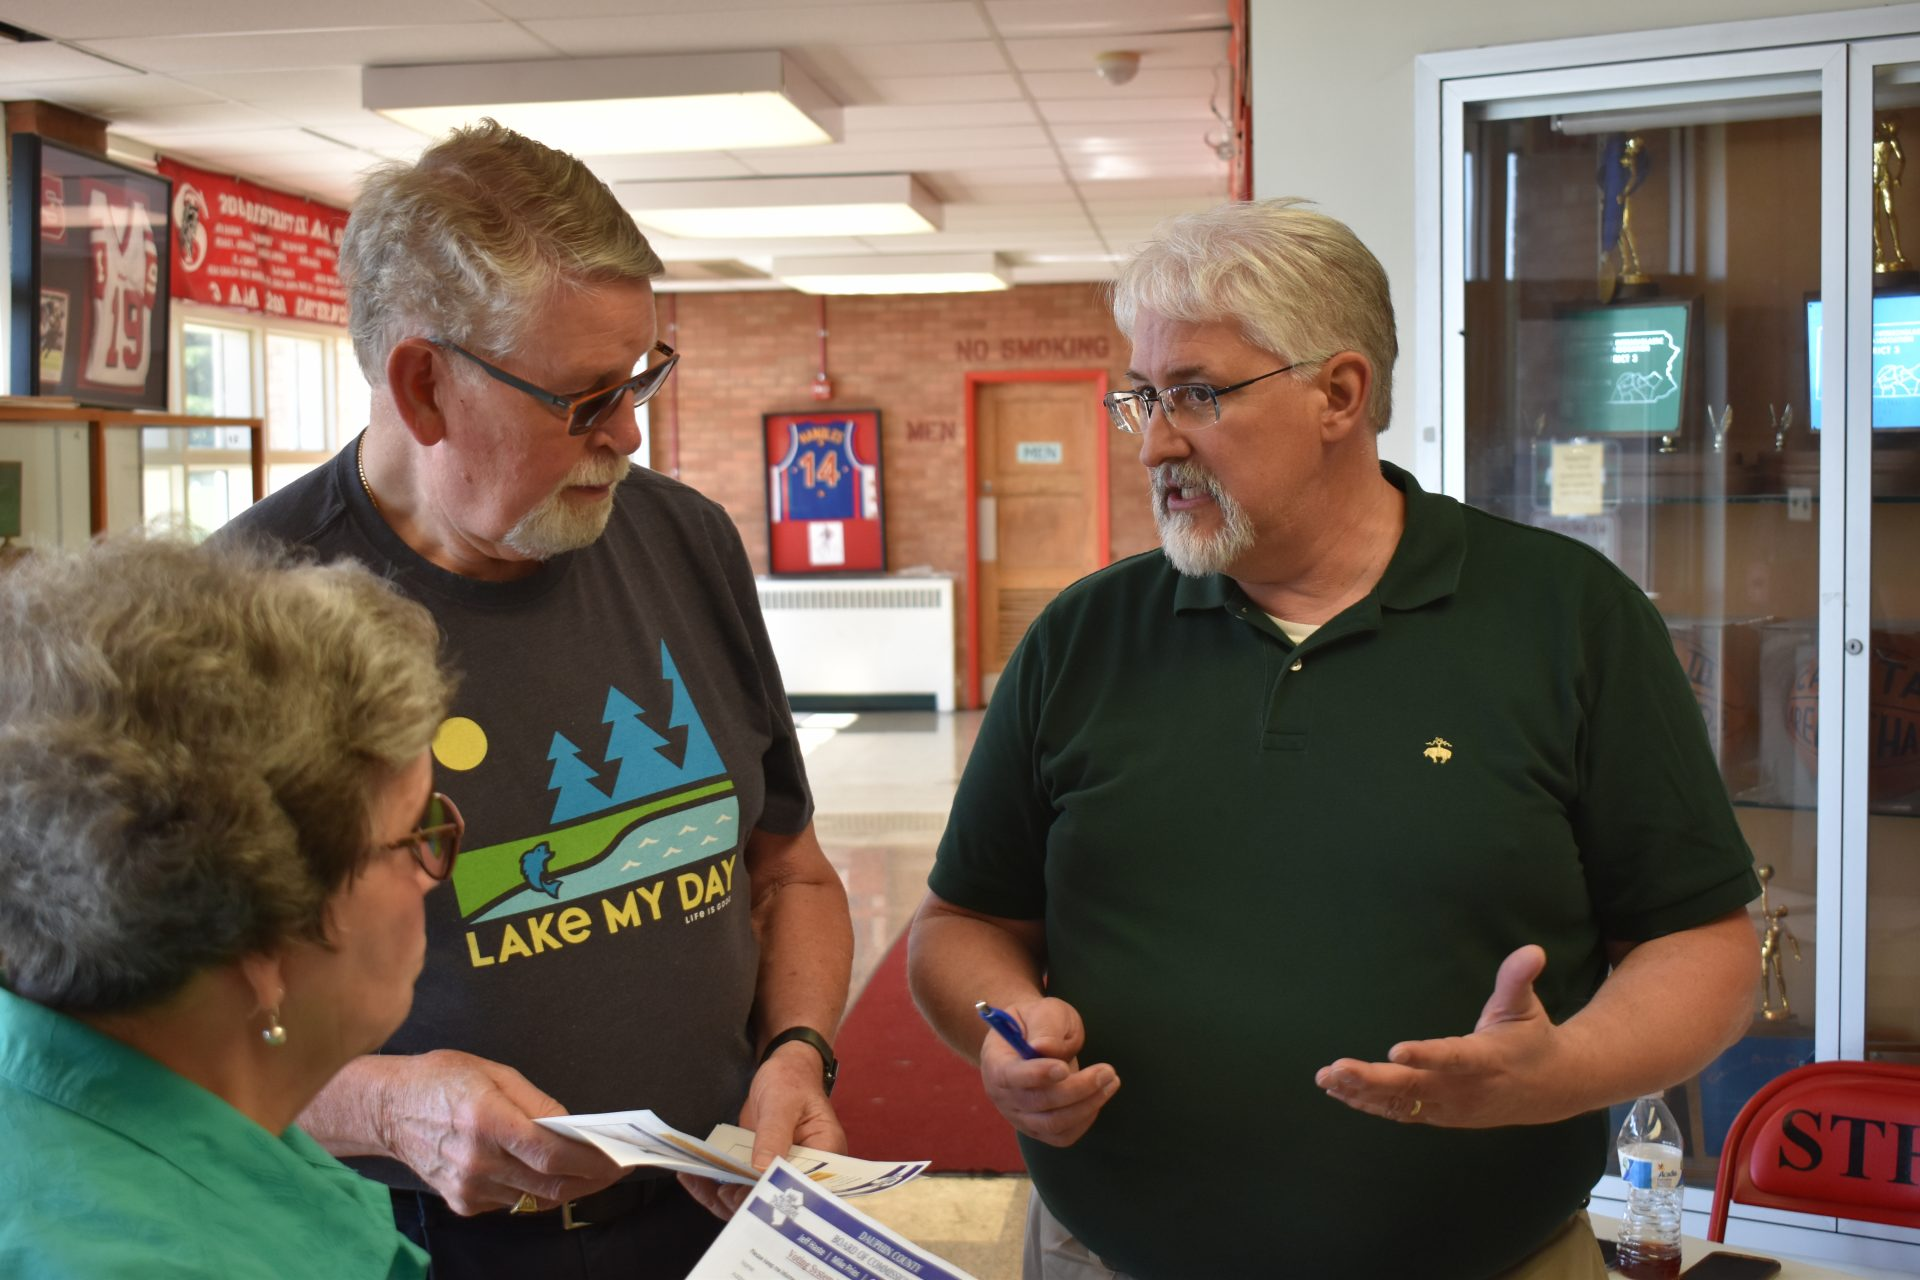 Jerry Feaser, director of elections and voter registration in Dauphin County, right, greets people at the start of voting machine demonstration on June 11, 2019, at Susquehanna Township High School.